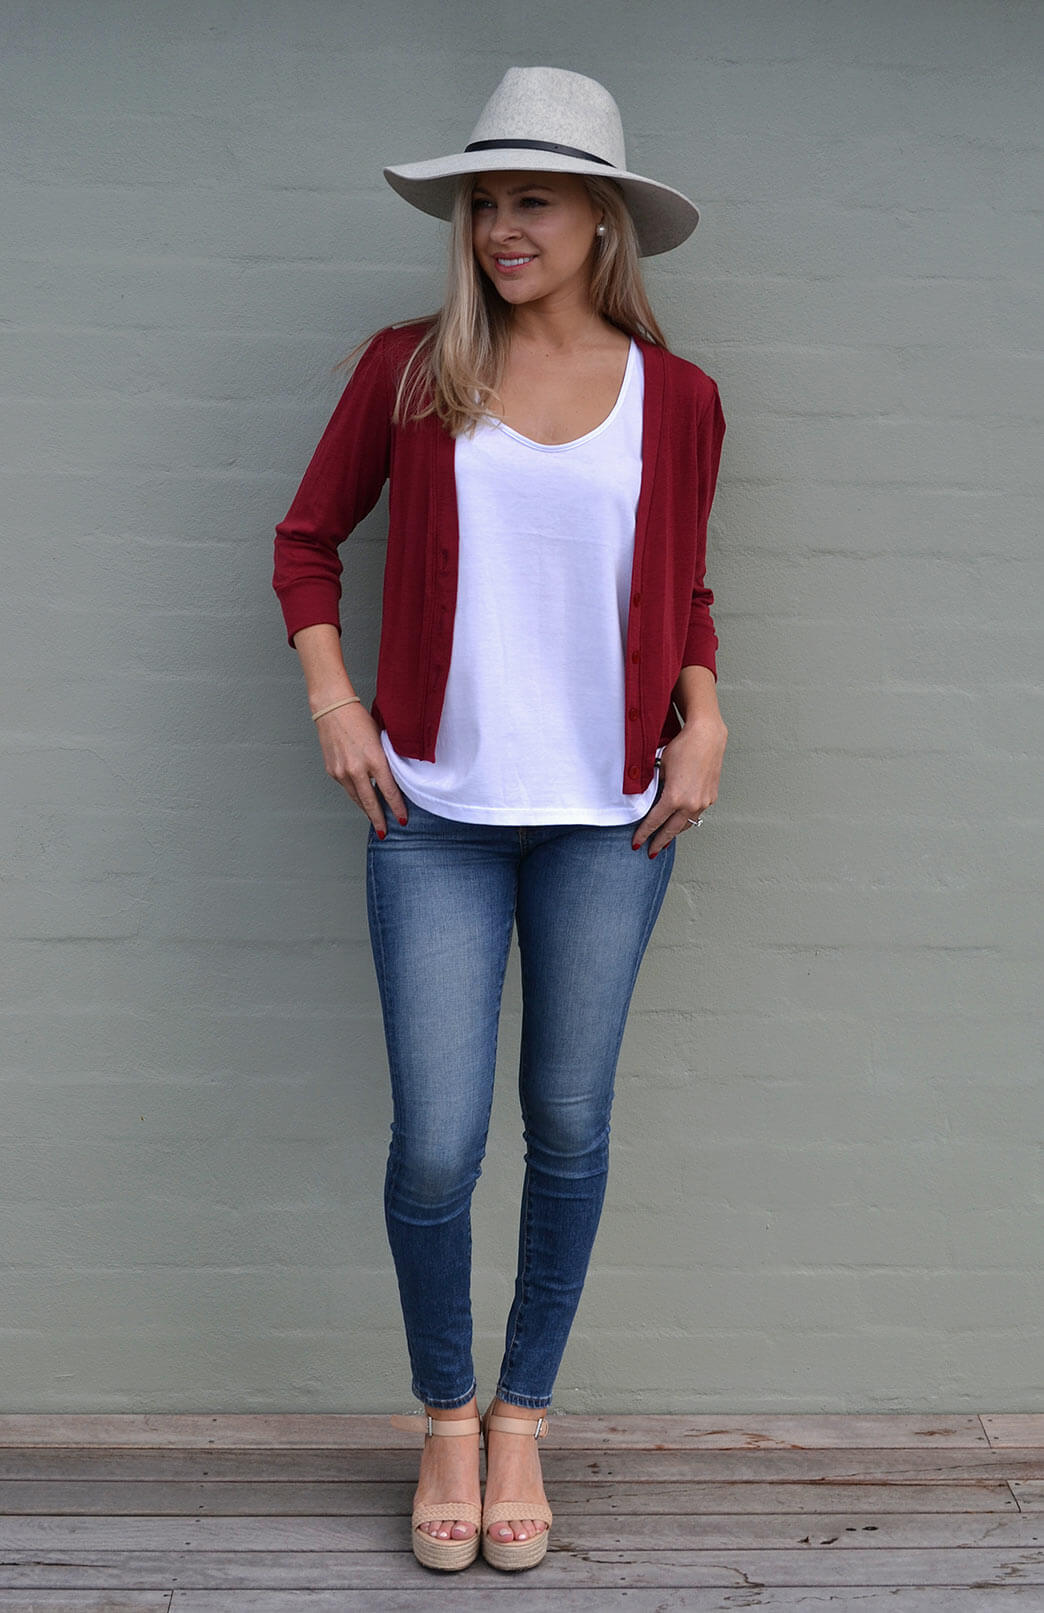 Crop Cardigan - 3/4 Sleeve - Women's Deep Burgundy Red Crop Short Cardigan with 3/4 Sleeves and Buttons - Smitten Merino Tasmania Australia